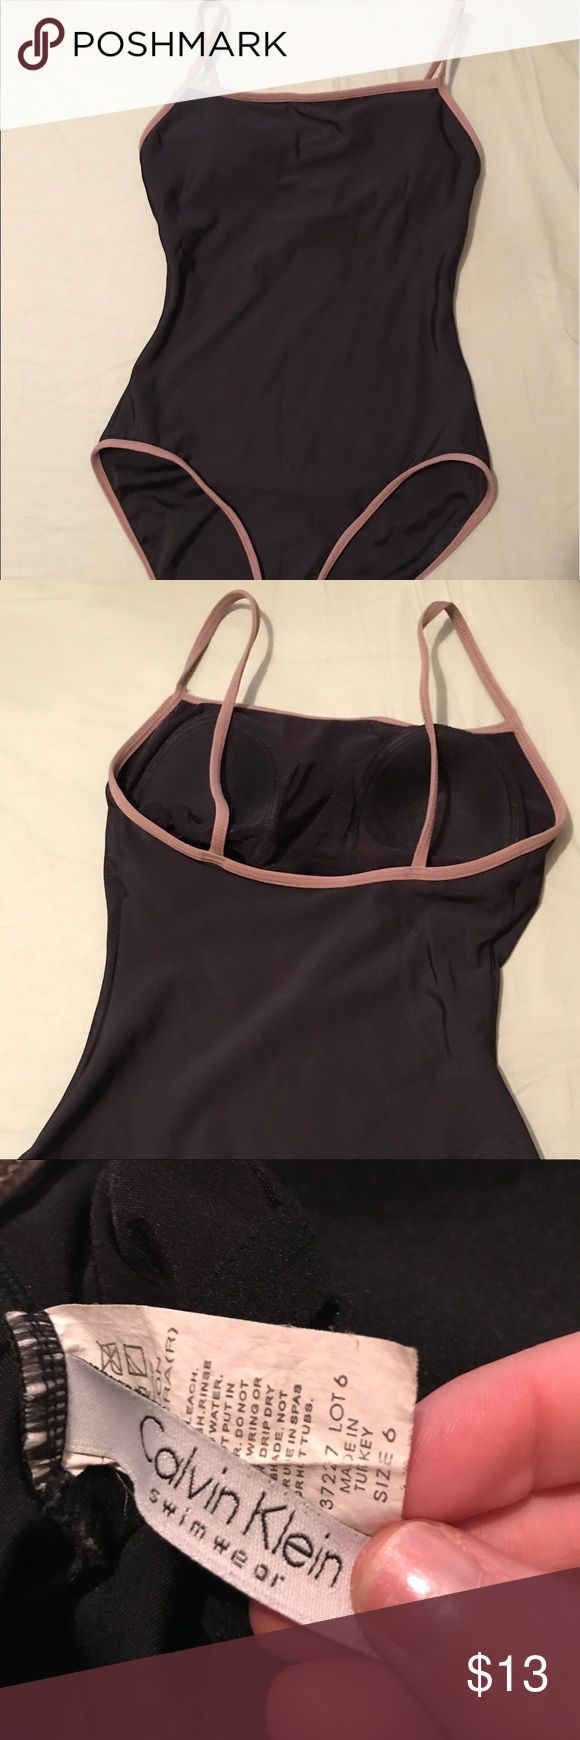 vintage calvin klein one piece swimsuit vintage black and army green one piece calvin klein swim suit. super cute/hipster. in great condition. Calvin Klein Swim One Pieces